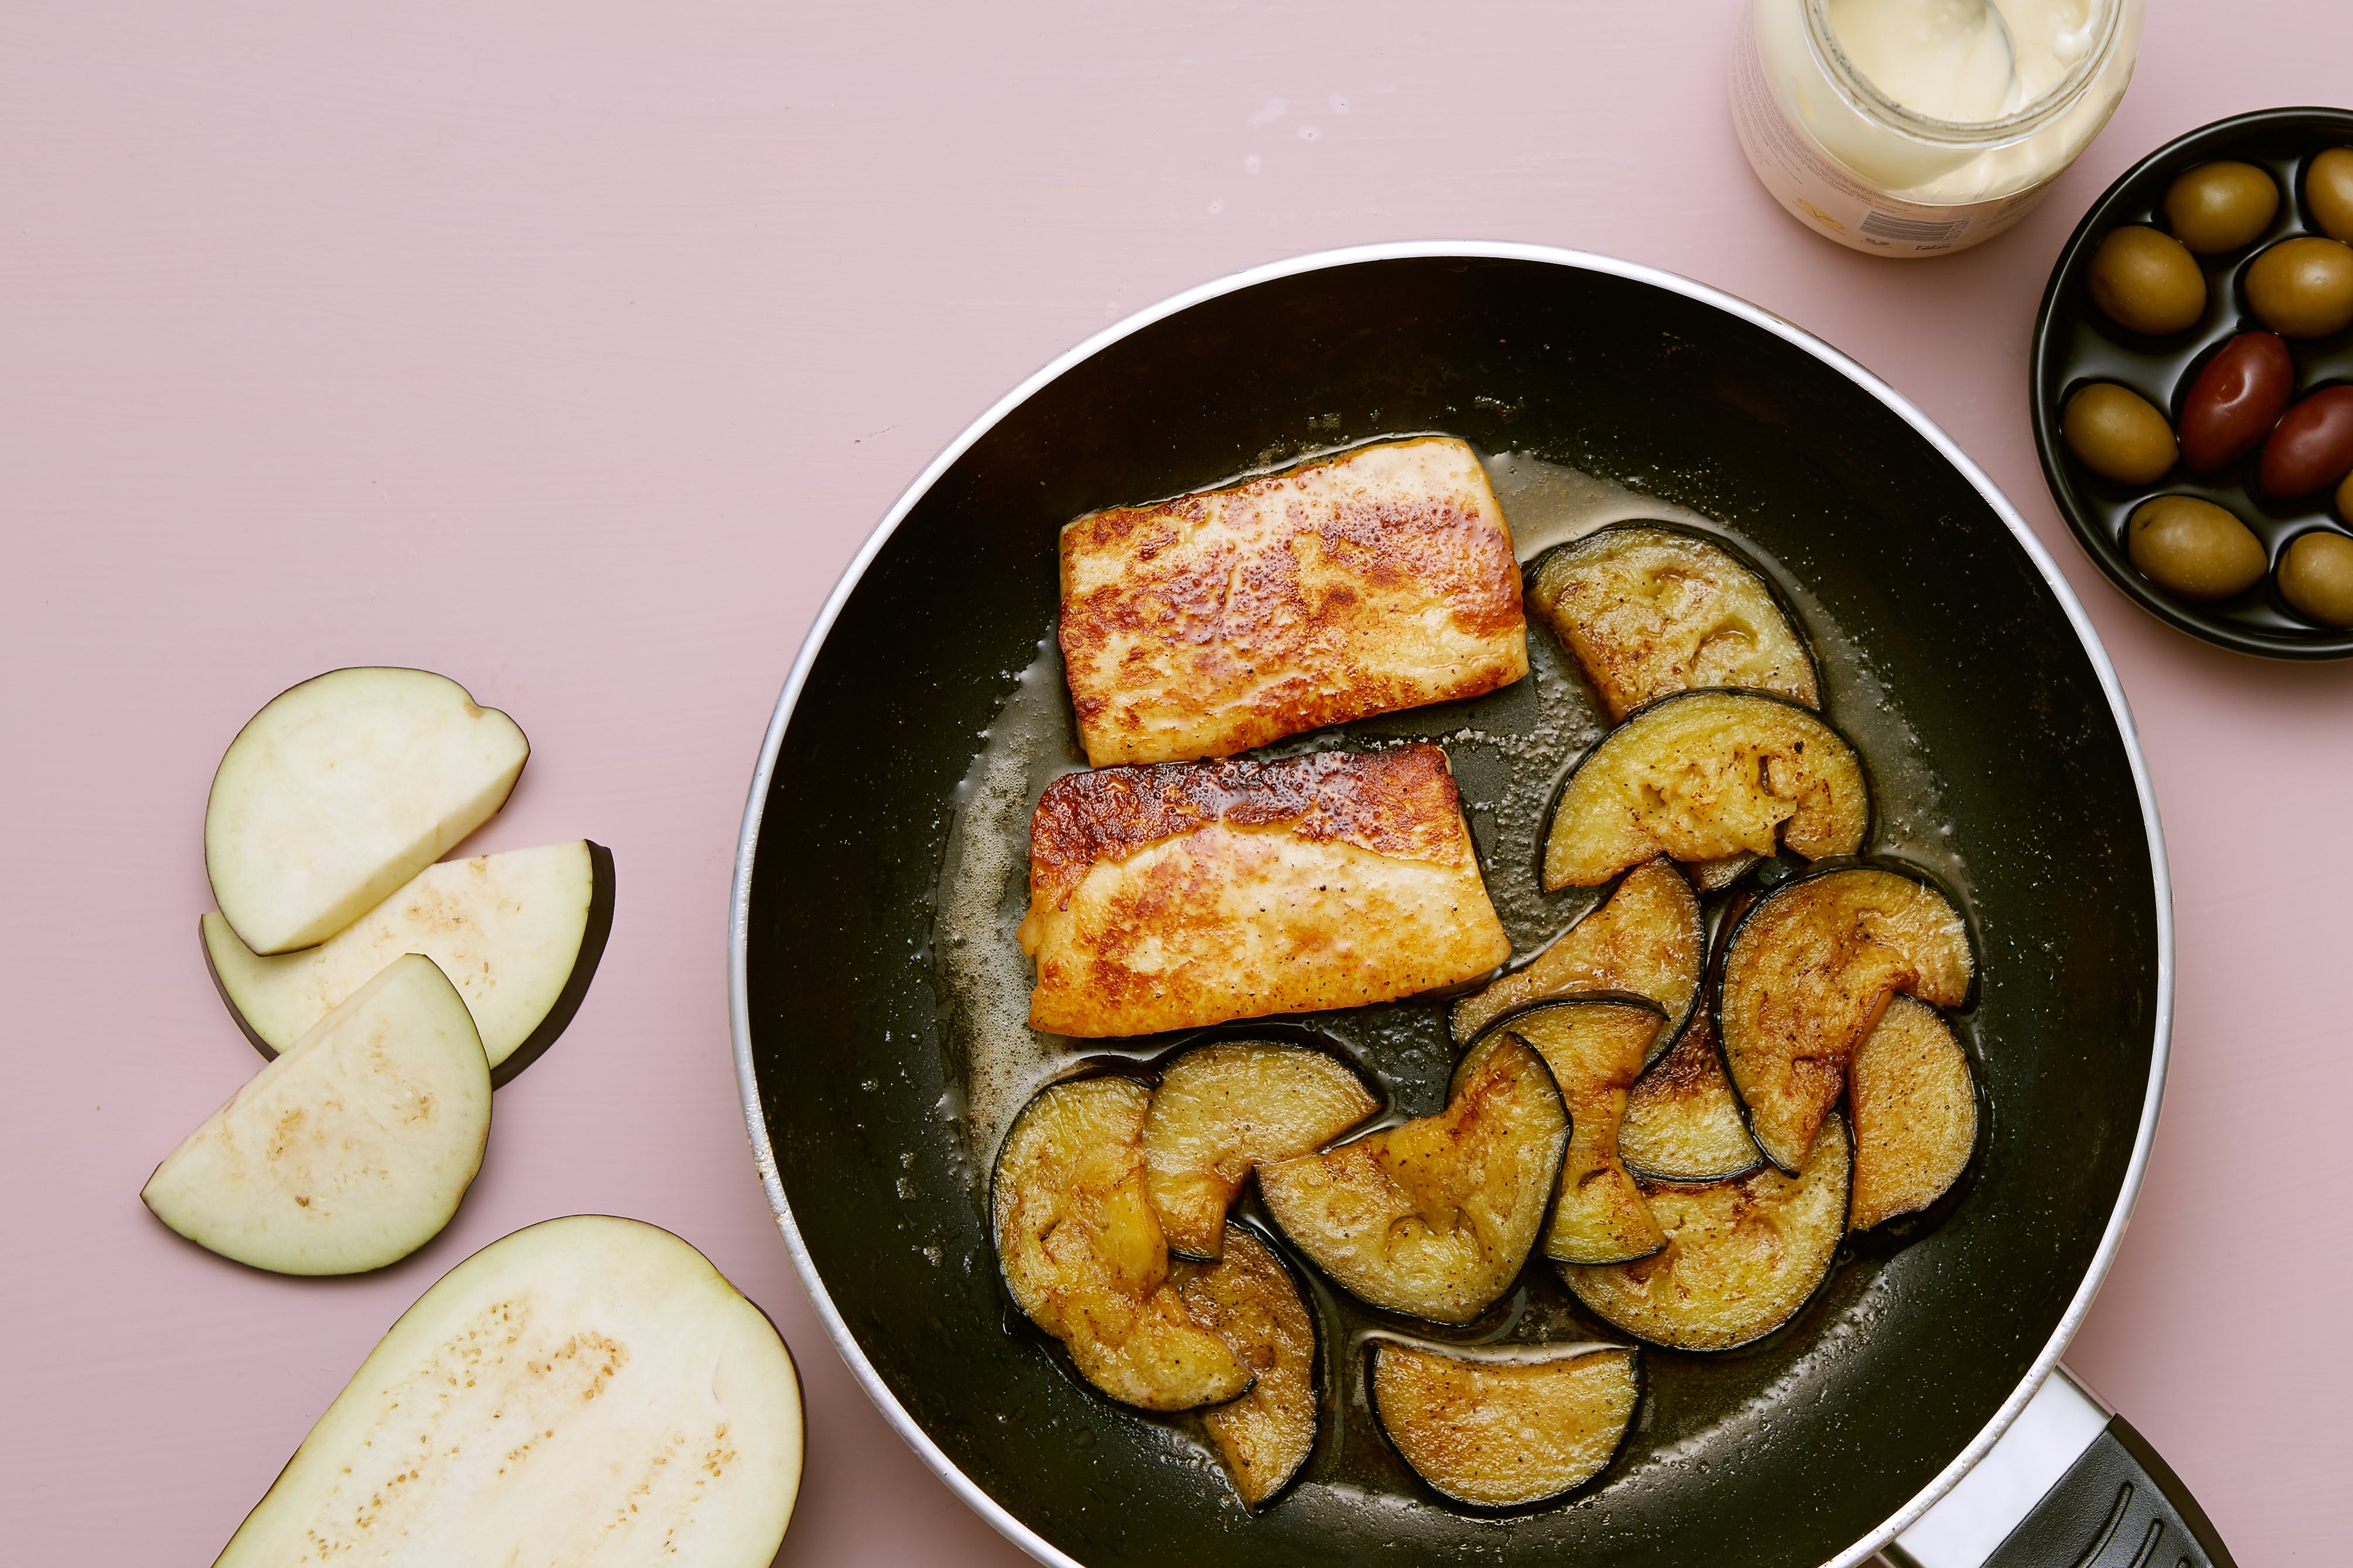 Halloumi cheese with butter-fried eggplant